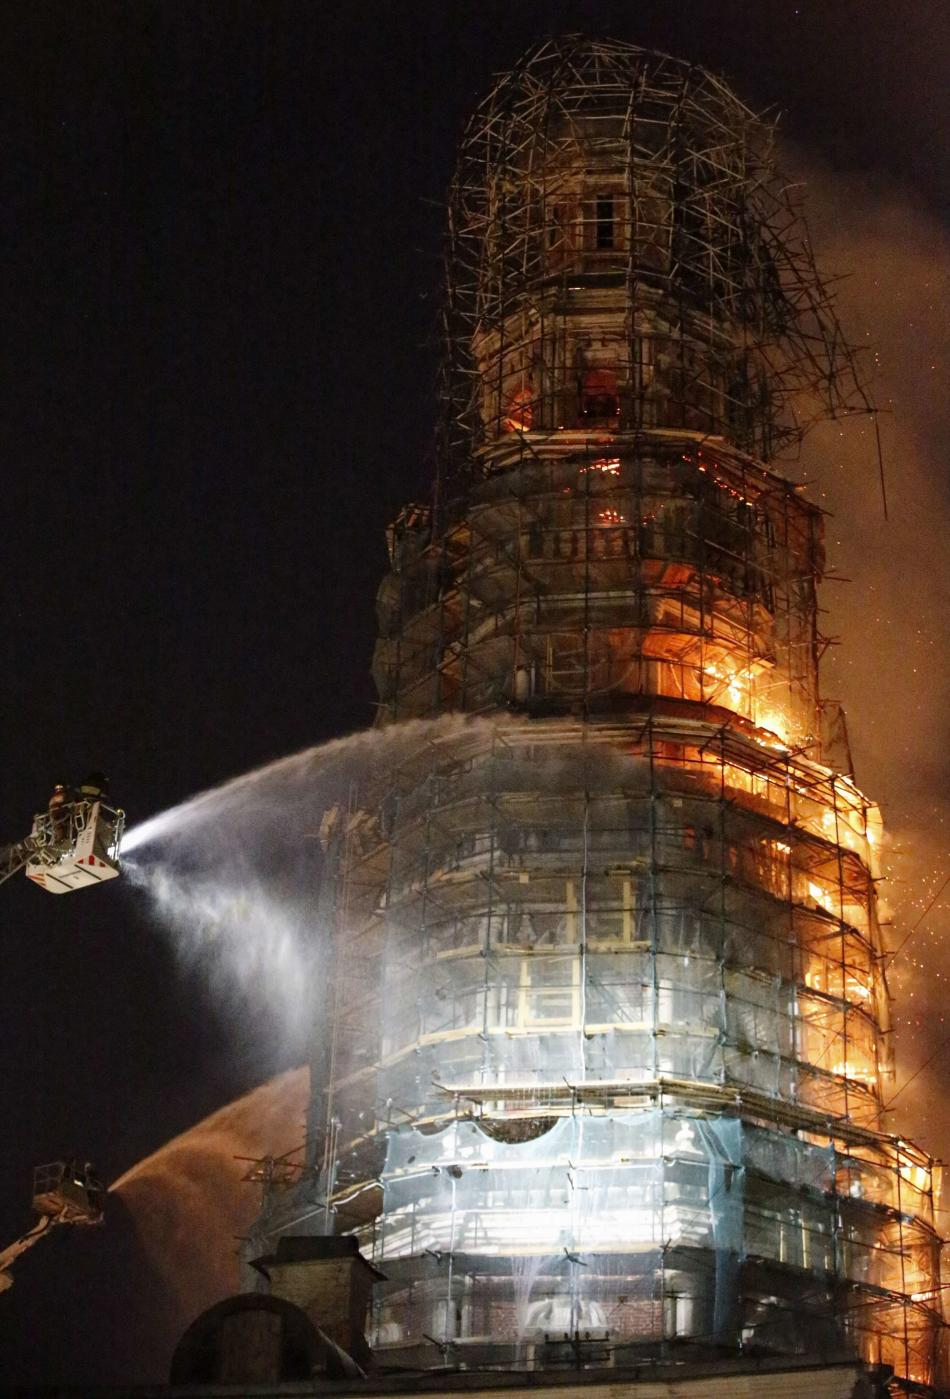 Firefighters work to extinguish a fire at the bell tower of Novodevichy monastery in Moscow